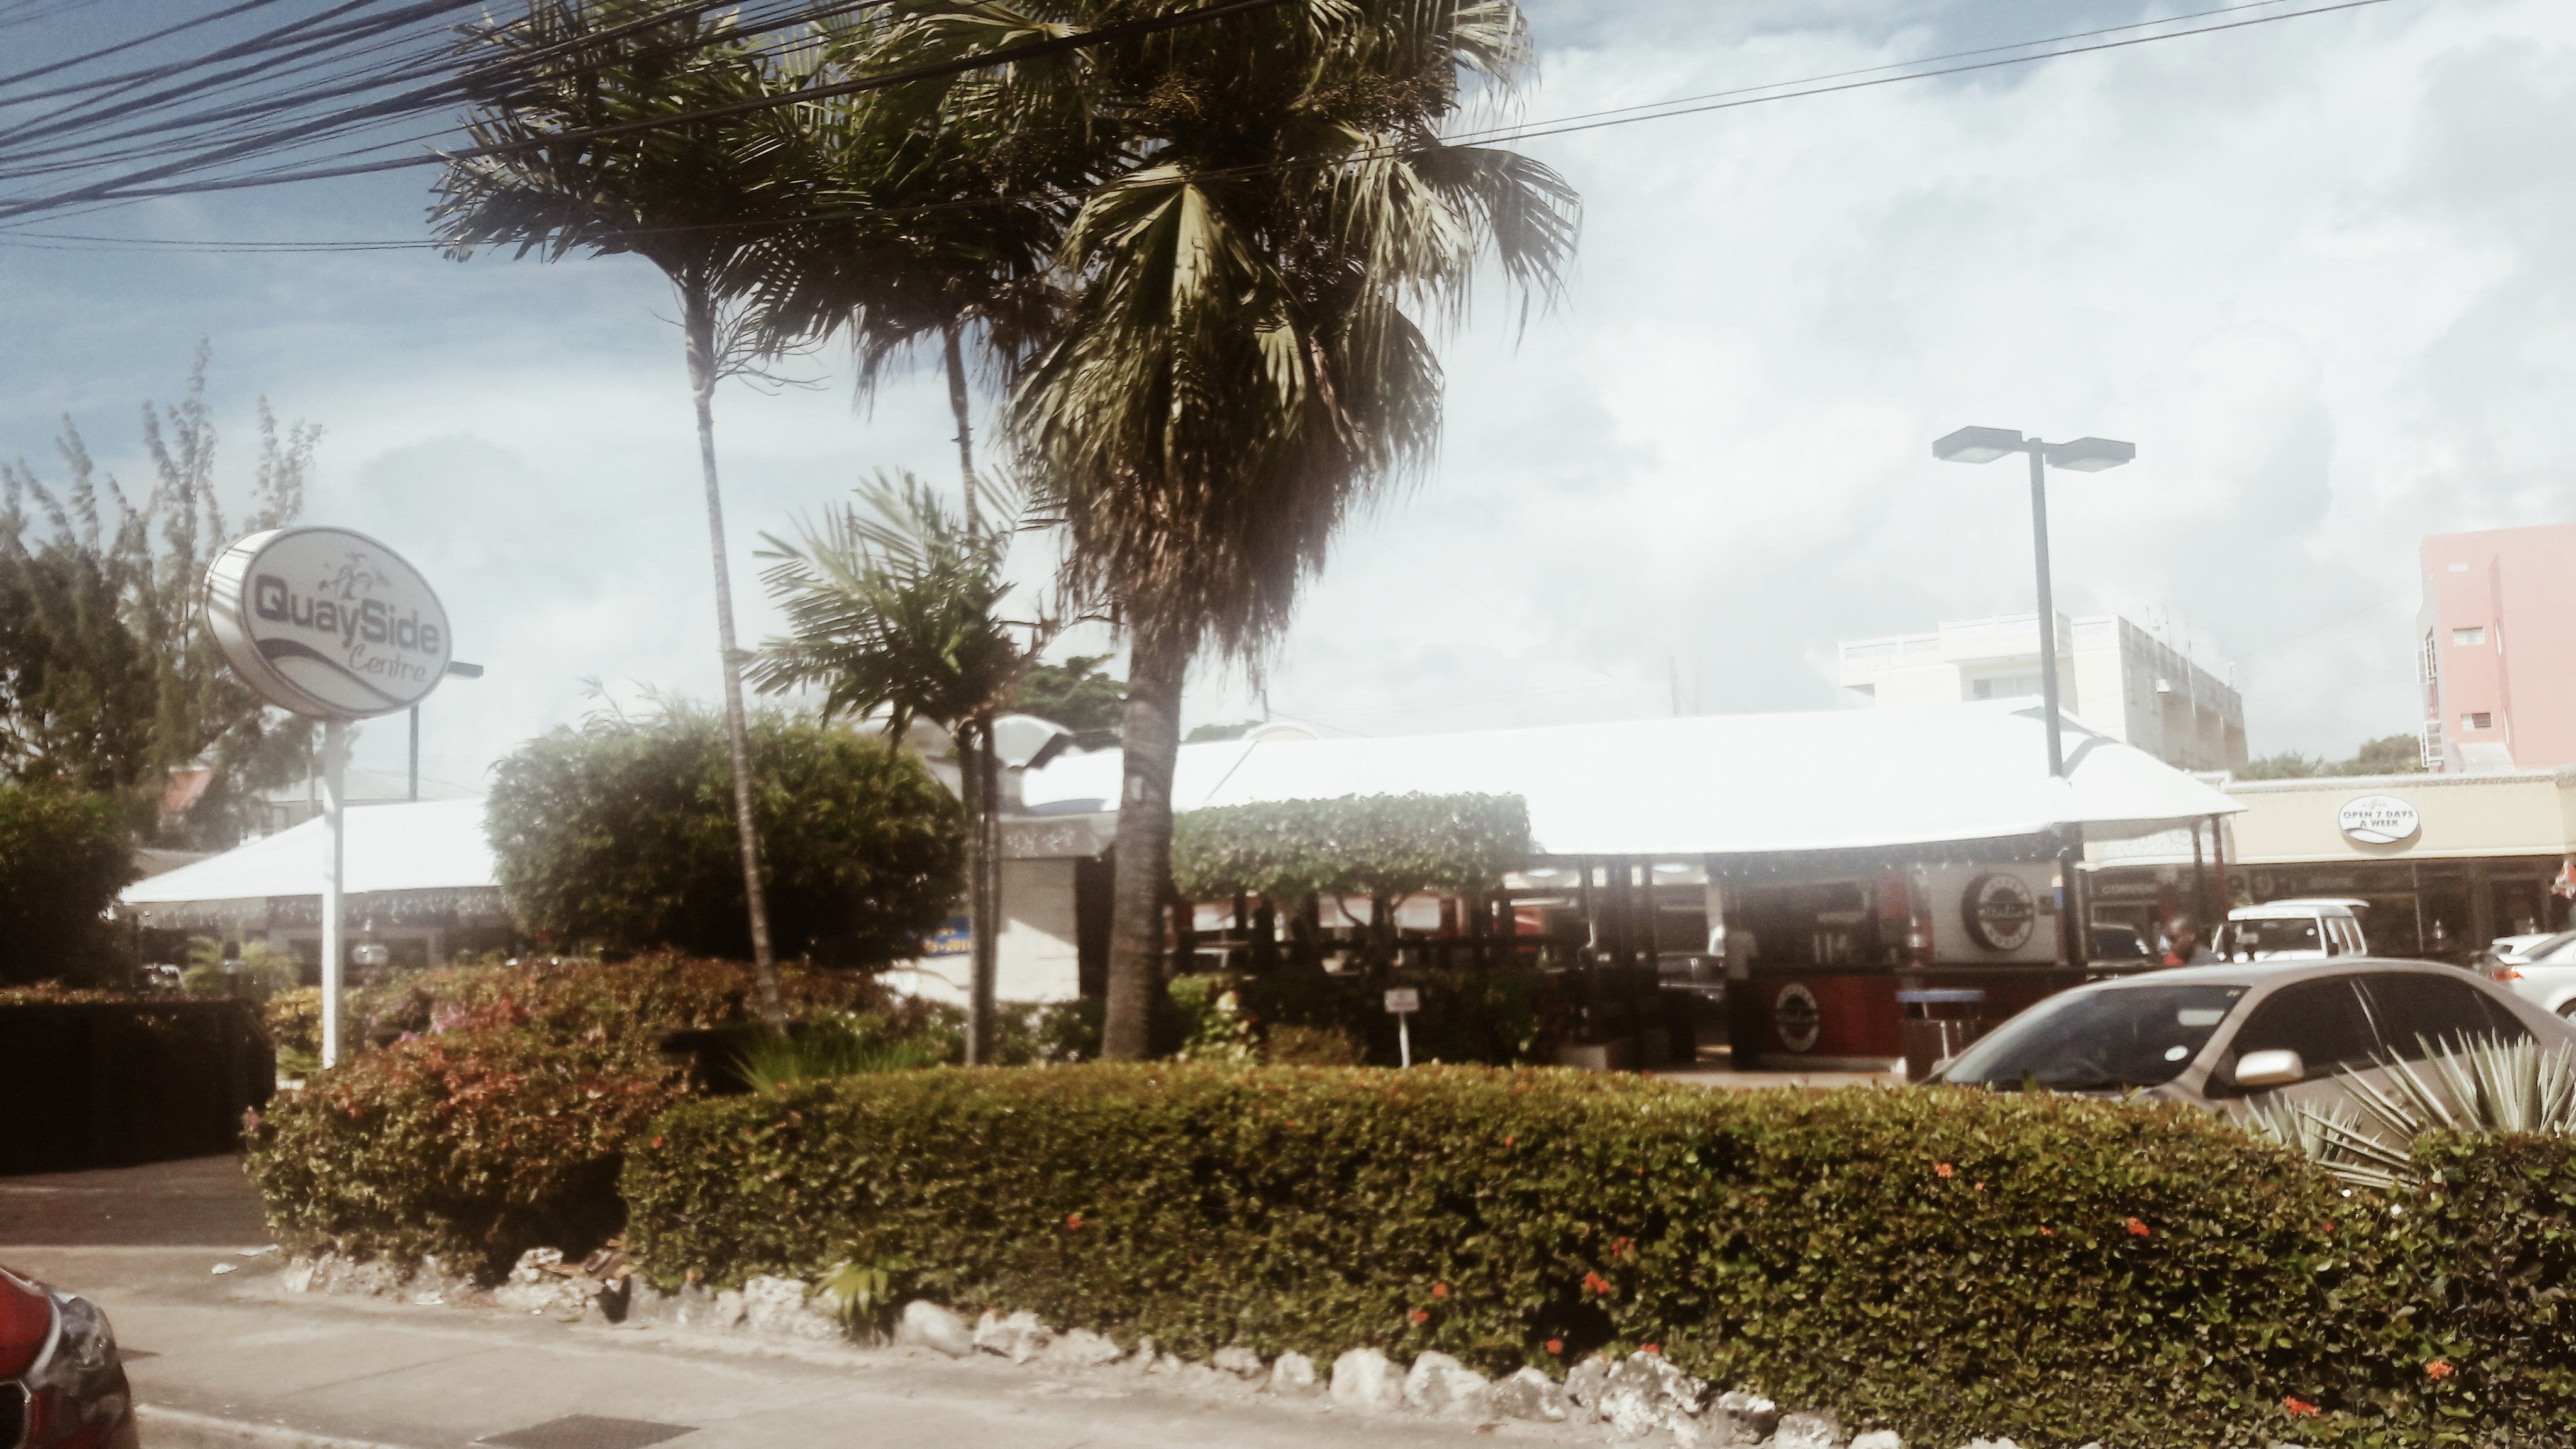 Quayside Centre, Rockley, Barbados